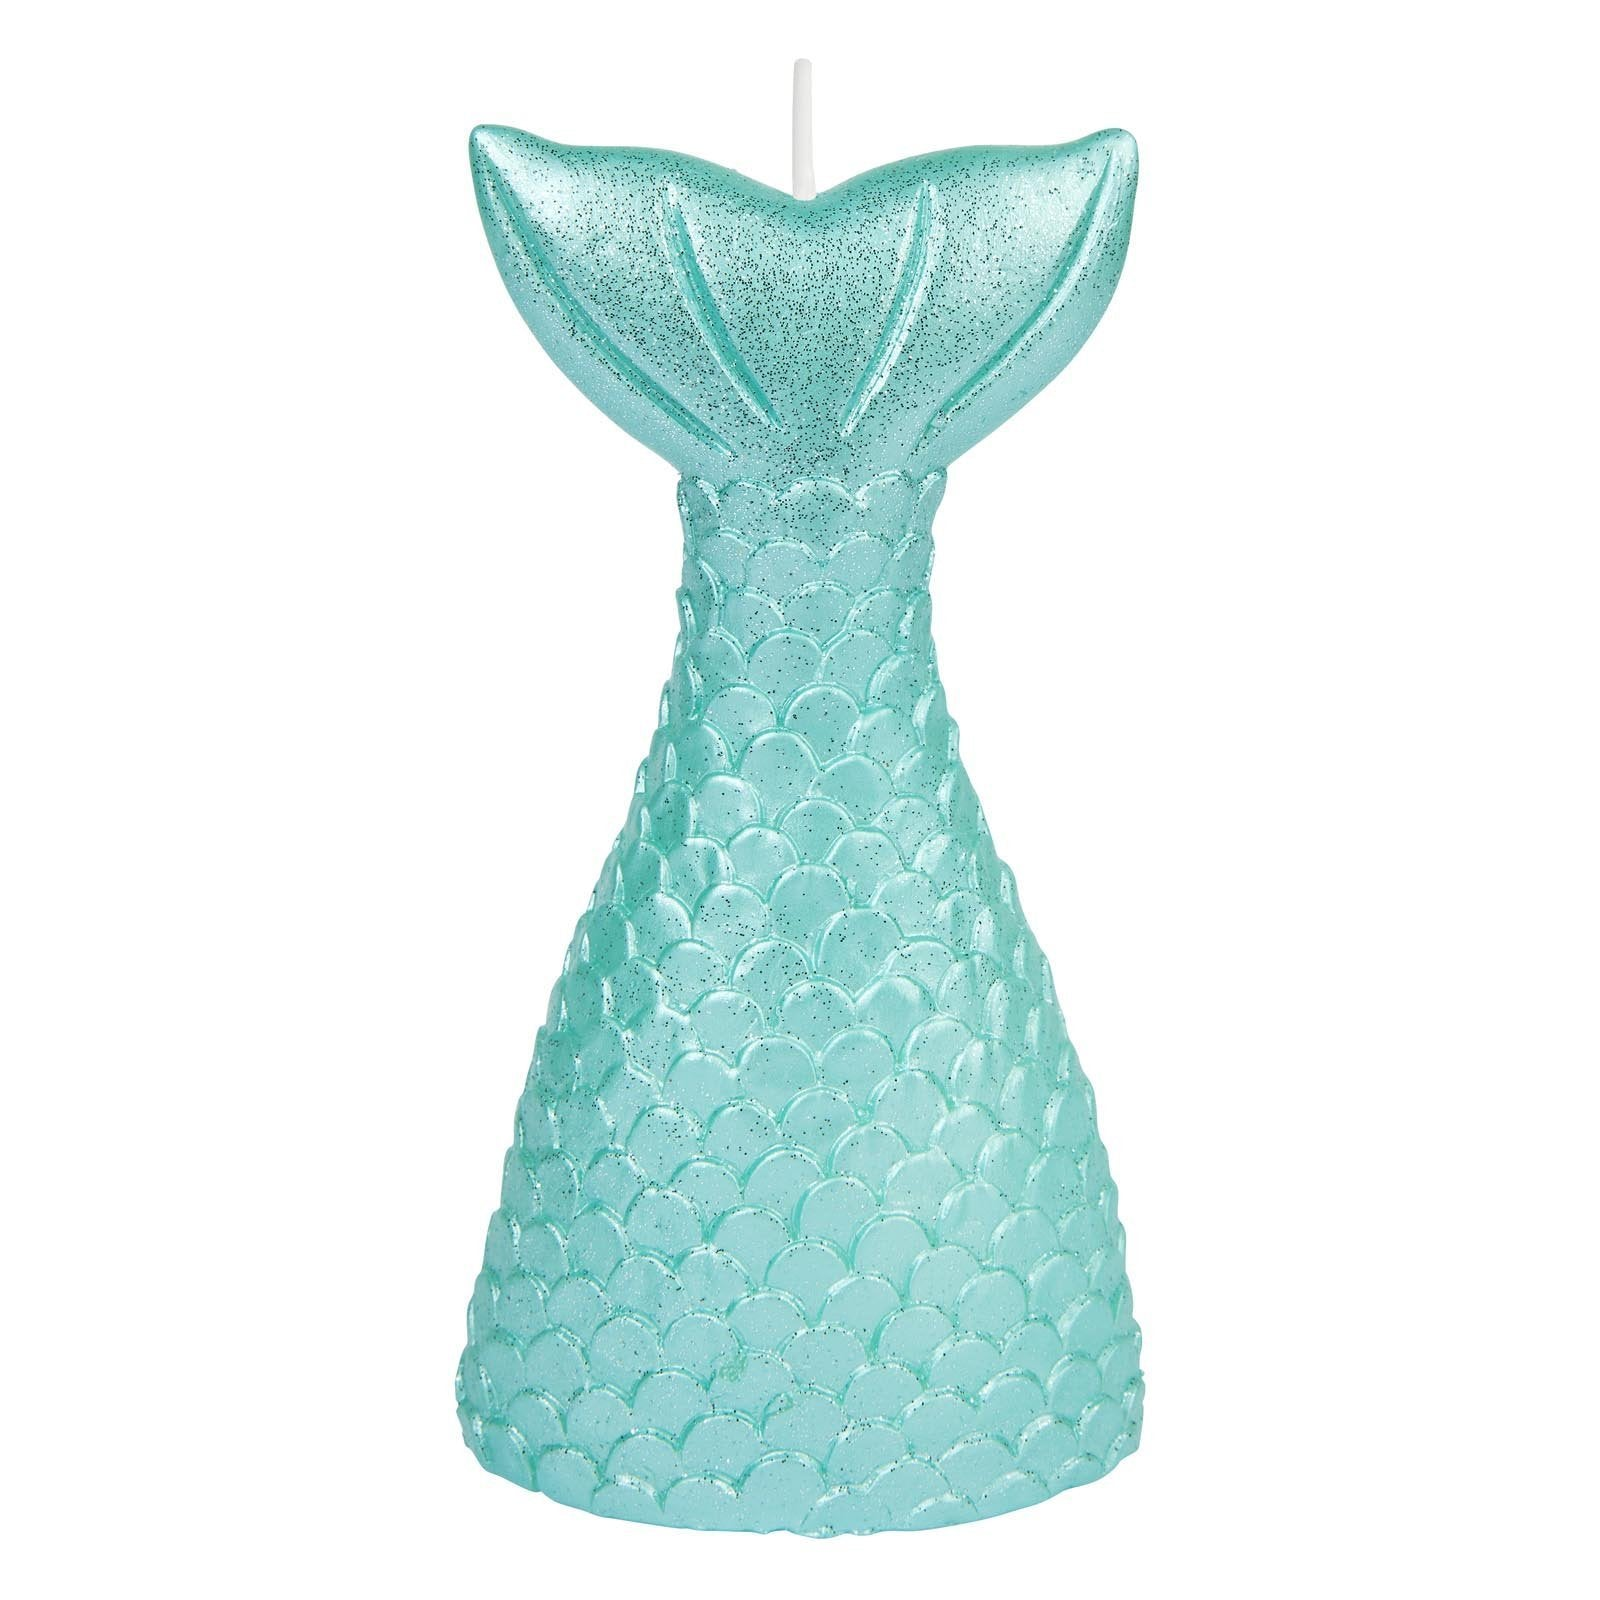 Sunnylife Mermaid Candle (Small)